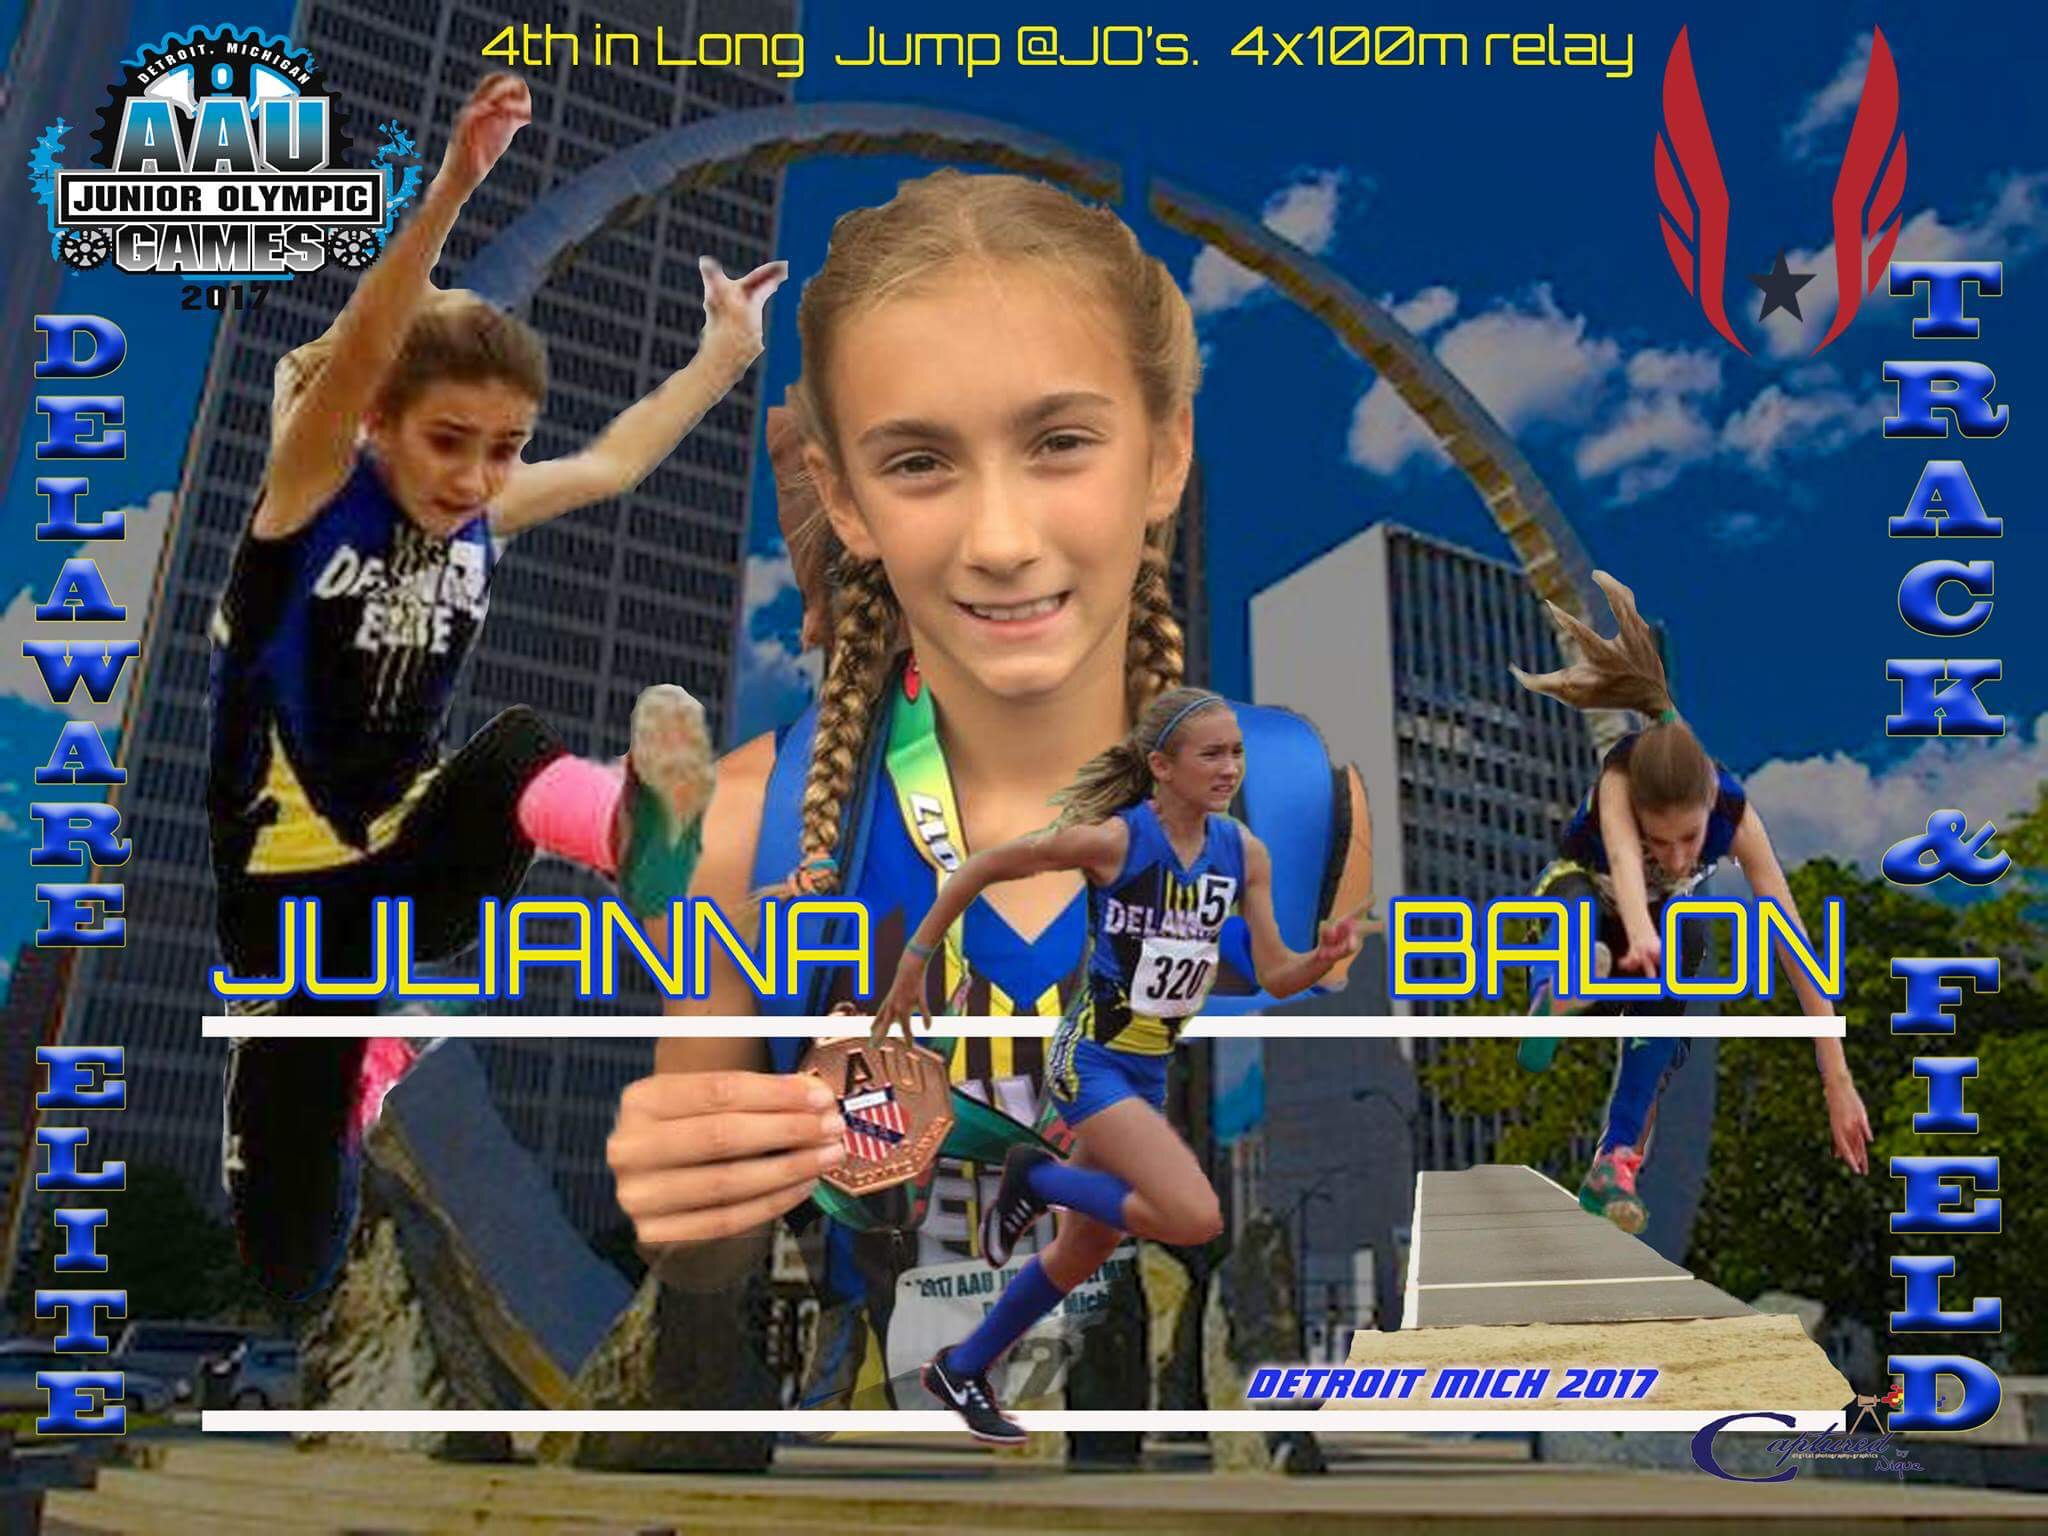 Julianna Balon - 4th place medalist in Long jump Jr Olympics - 11/12 age division